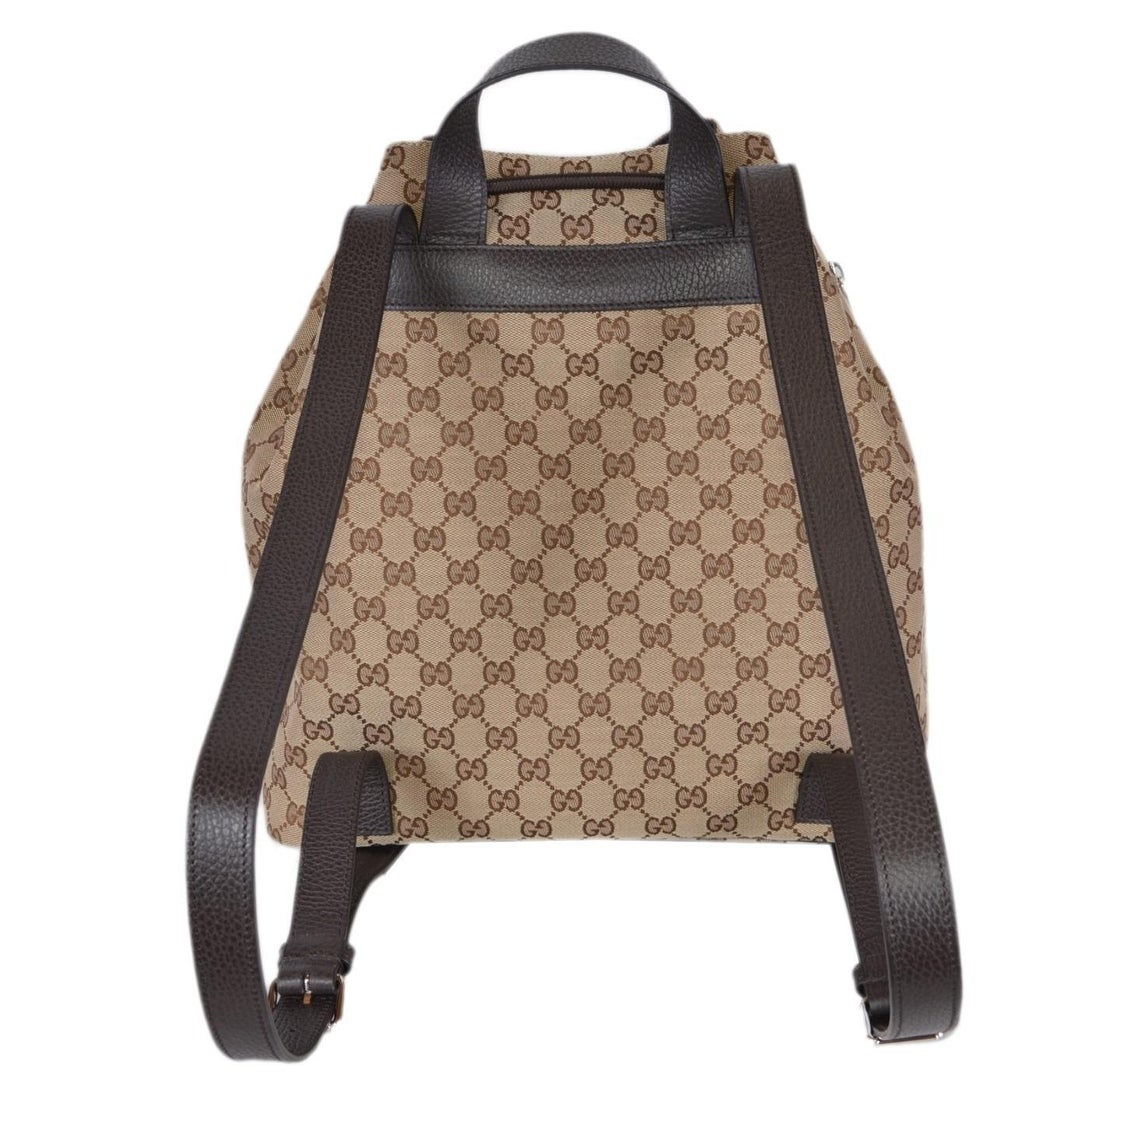 6e7662aa64cf Shop Gucci 449175 Beige Canvas GG Guccissima Drawstring Backpack Rucksack  Bag - Beige/Brown - Free Shipping Today - Overstock - 22817017